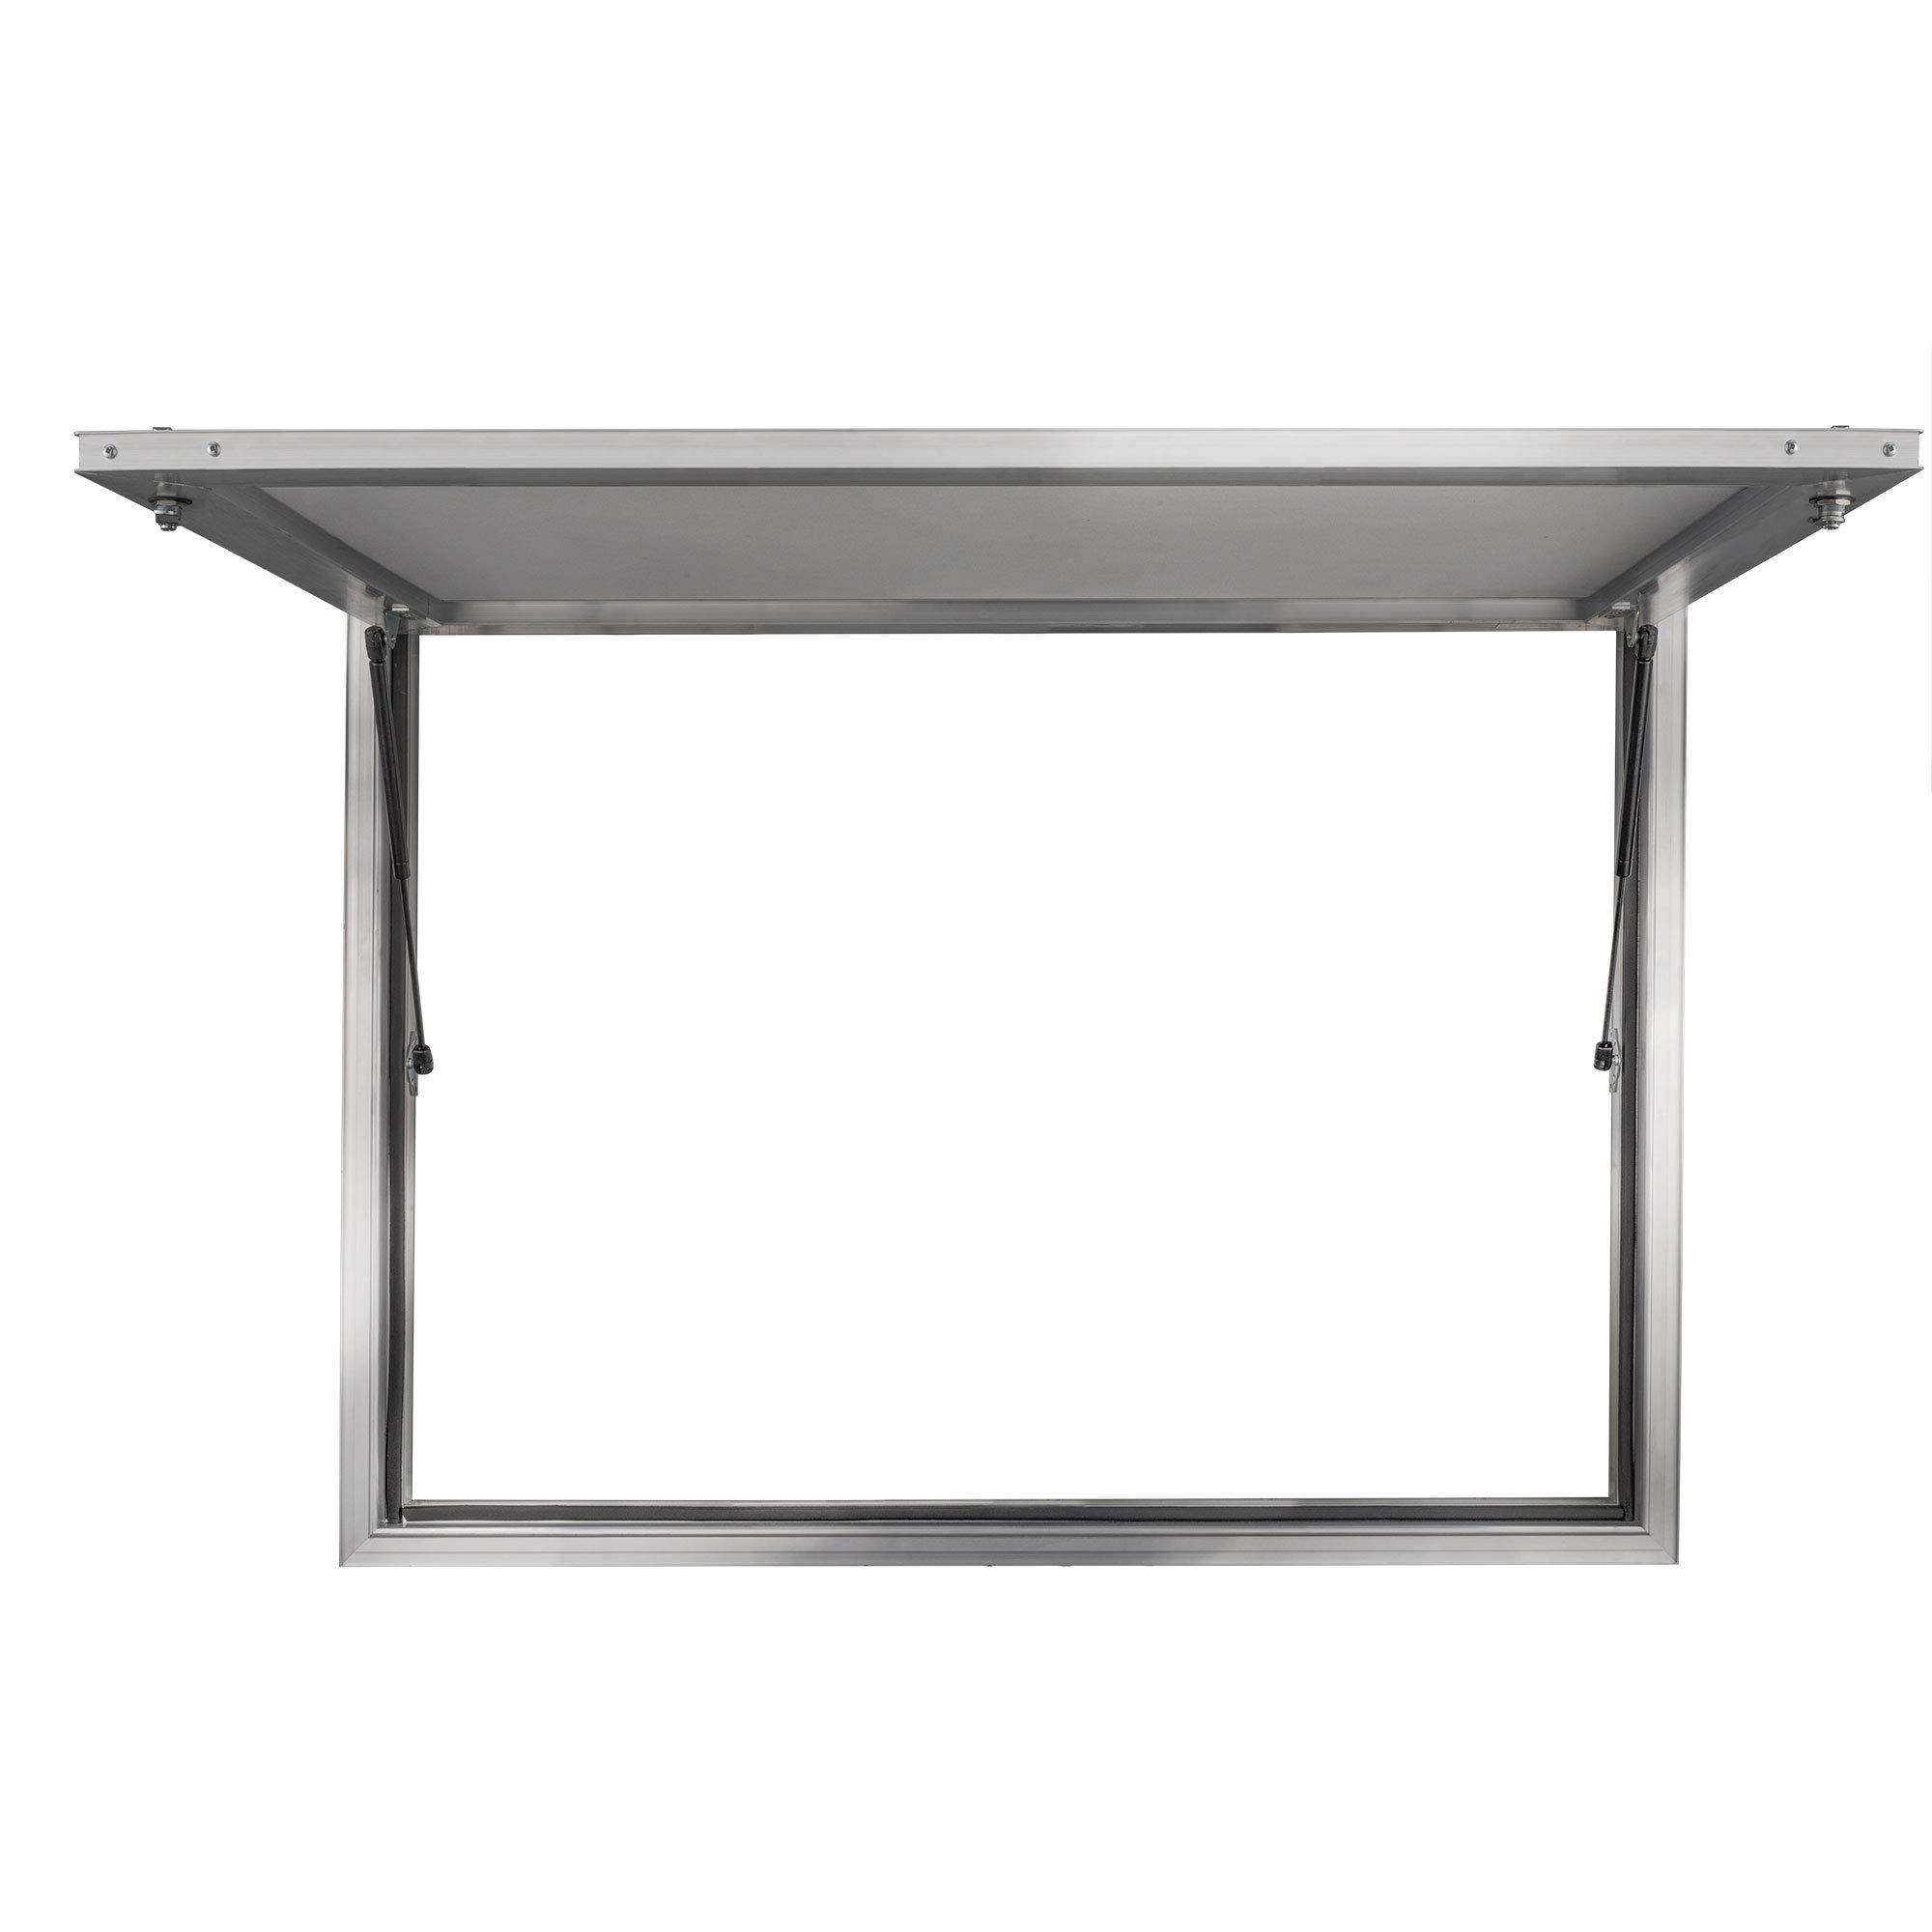 Concession Stand Serving Window Door | 36'' x 24'' Concession Awning Door for Food Trucks | Glass Not Included